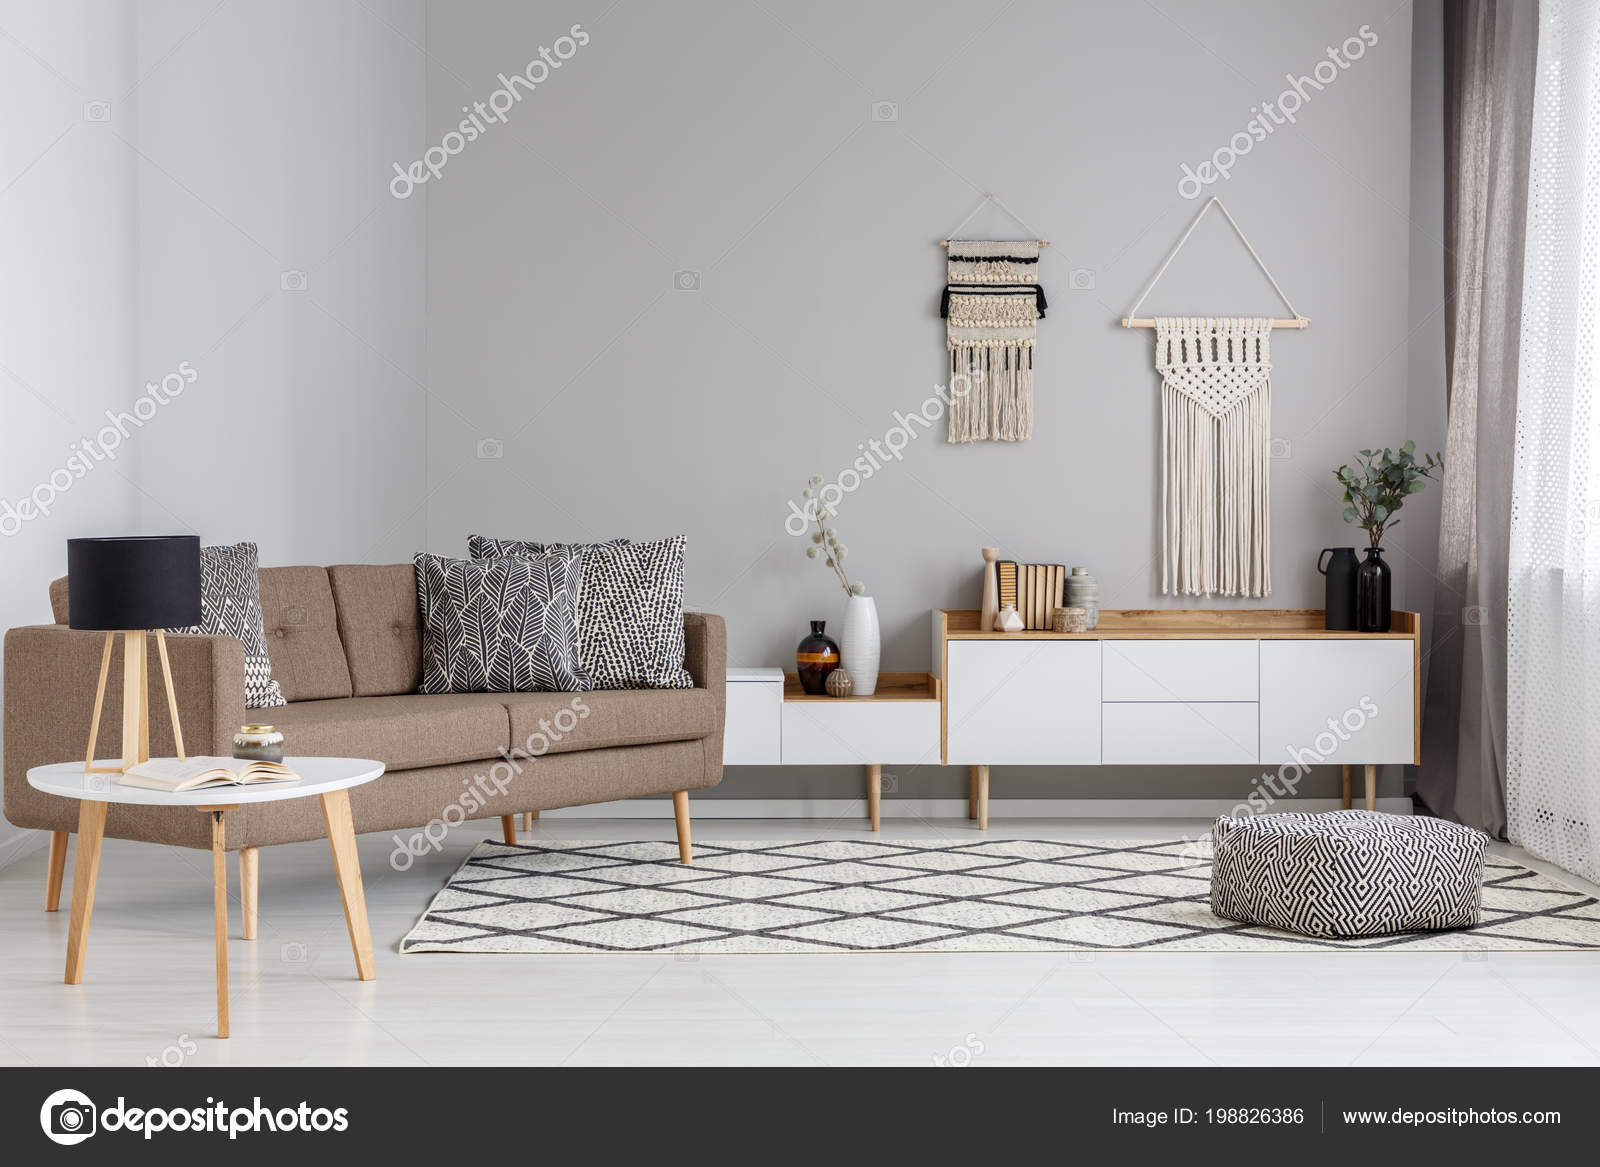 Patterned pouf carpet brown sofa modern living room interior lamp stock photo